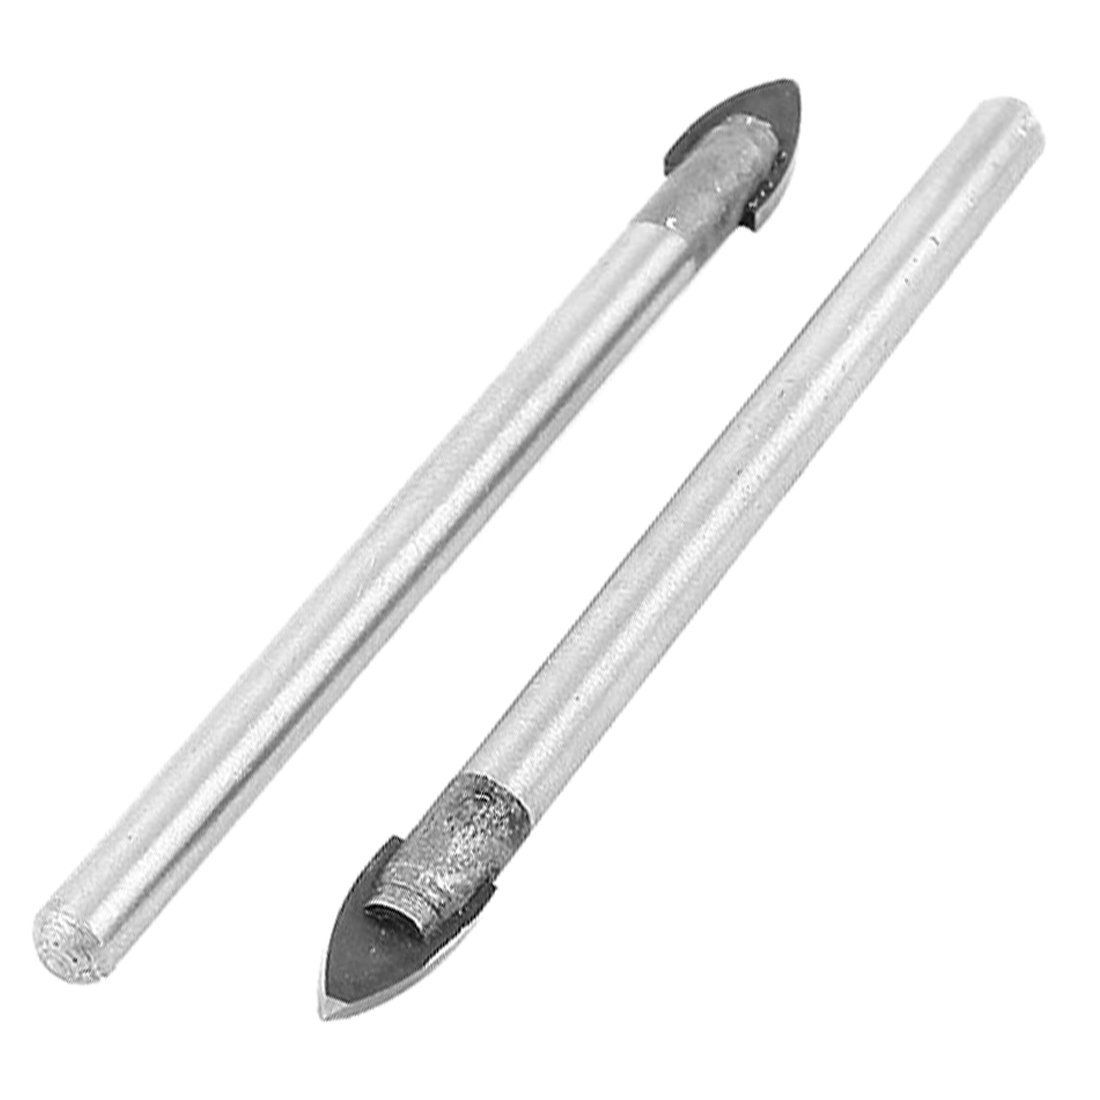 Glass Drill Bit Toogoor 6mm Dia Spear Point Head Ceramic Marble Tile Glass Drill Bit 10pcs Make Sure To Examine Out This Outstandin Marble Tiles Ceramics Drill